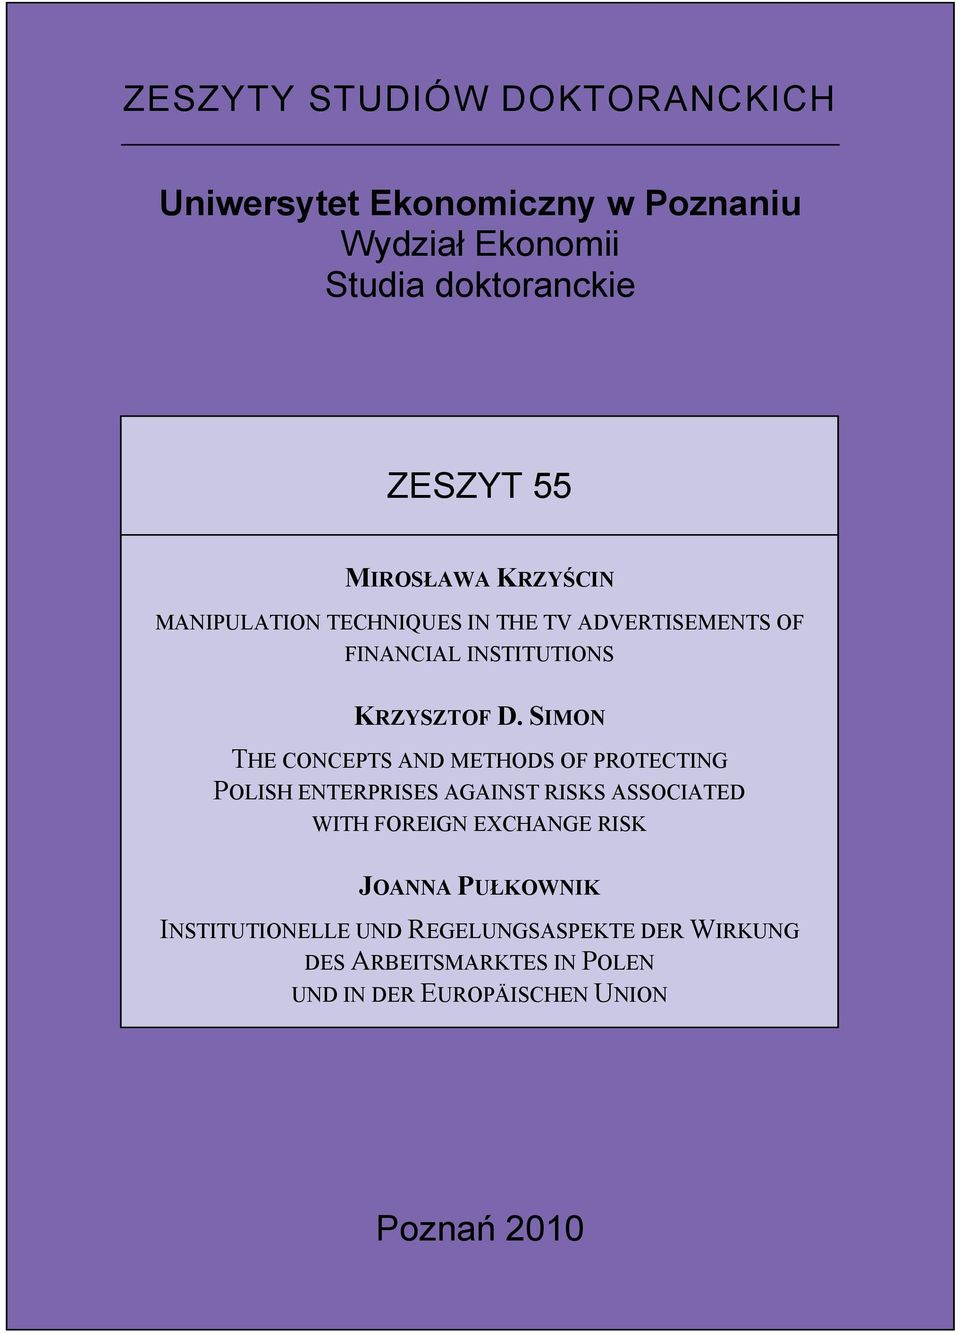 SIMON THE CONCEPTS AND METHODS OF PROTECTING POLISH ENTERPRISES AGAINST RISKS ASSOCIATED WITH FOREIGN EXCHANGE RISK